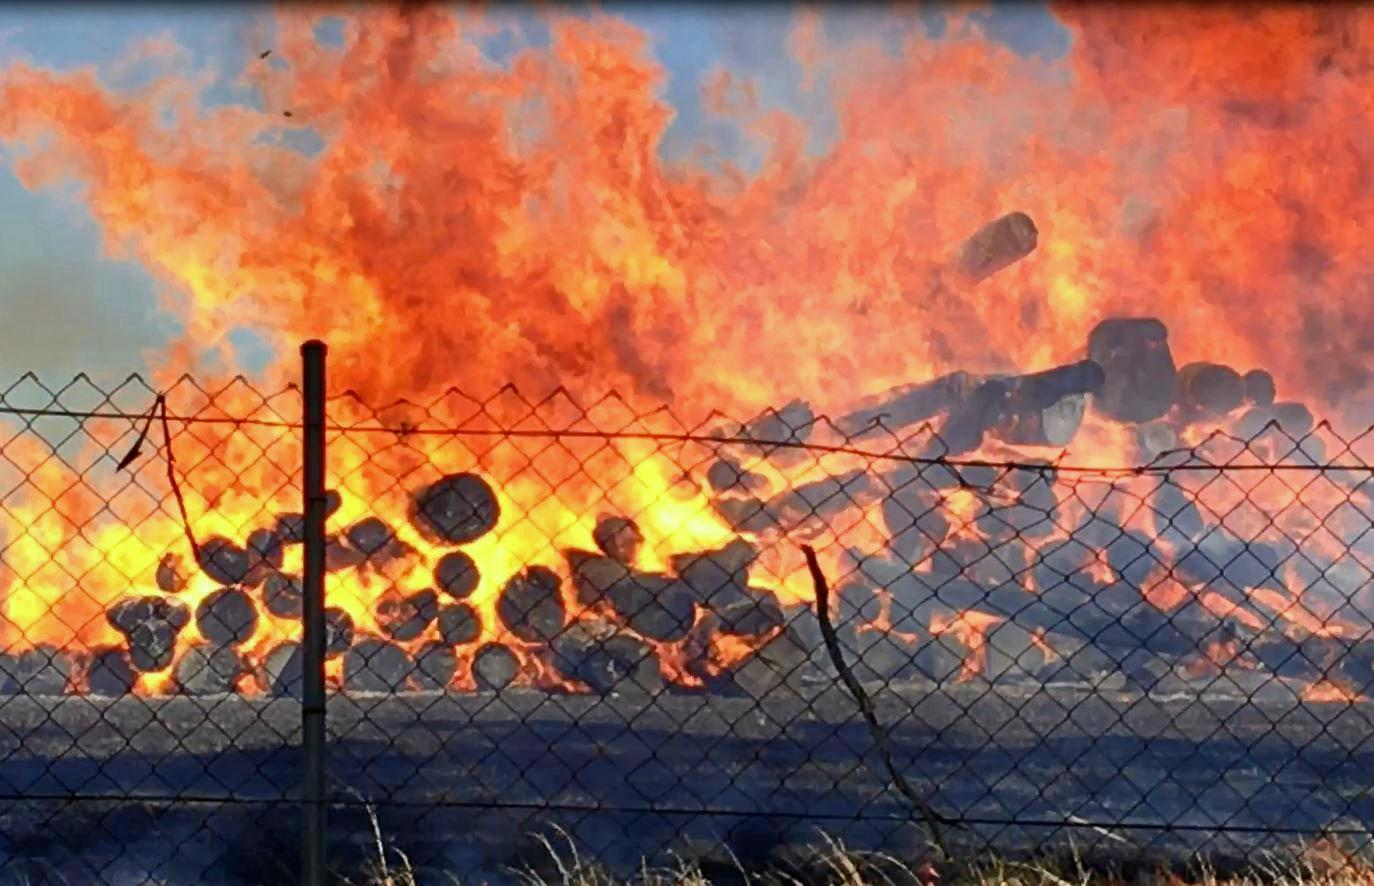 FIRE DANGER: Fire fighters are urging residents in the southwest to take precautions as conditions are right for bush and grass fires to spread quickly.